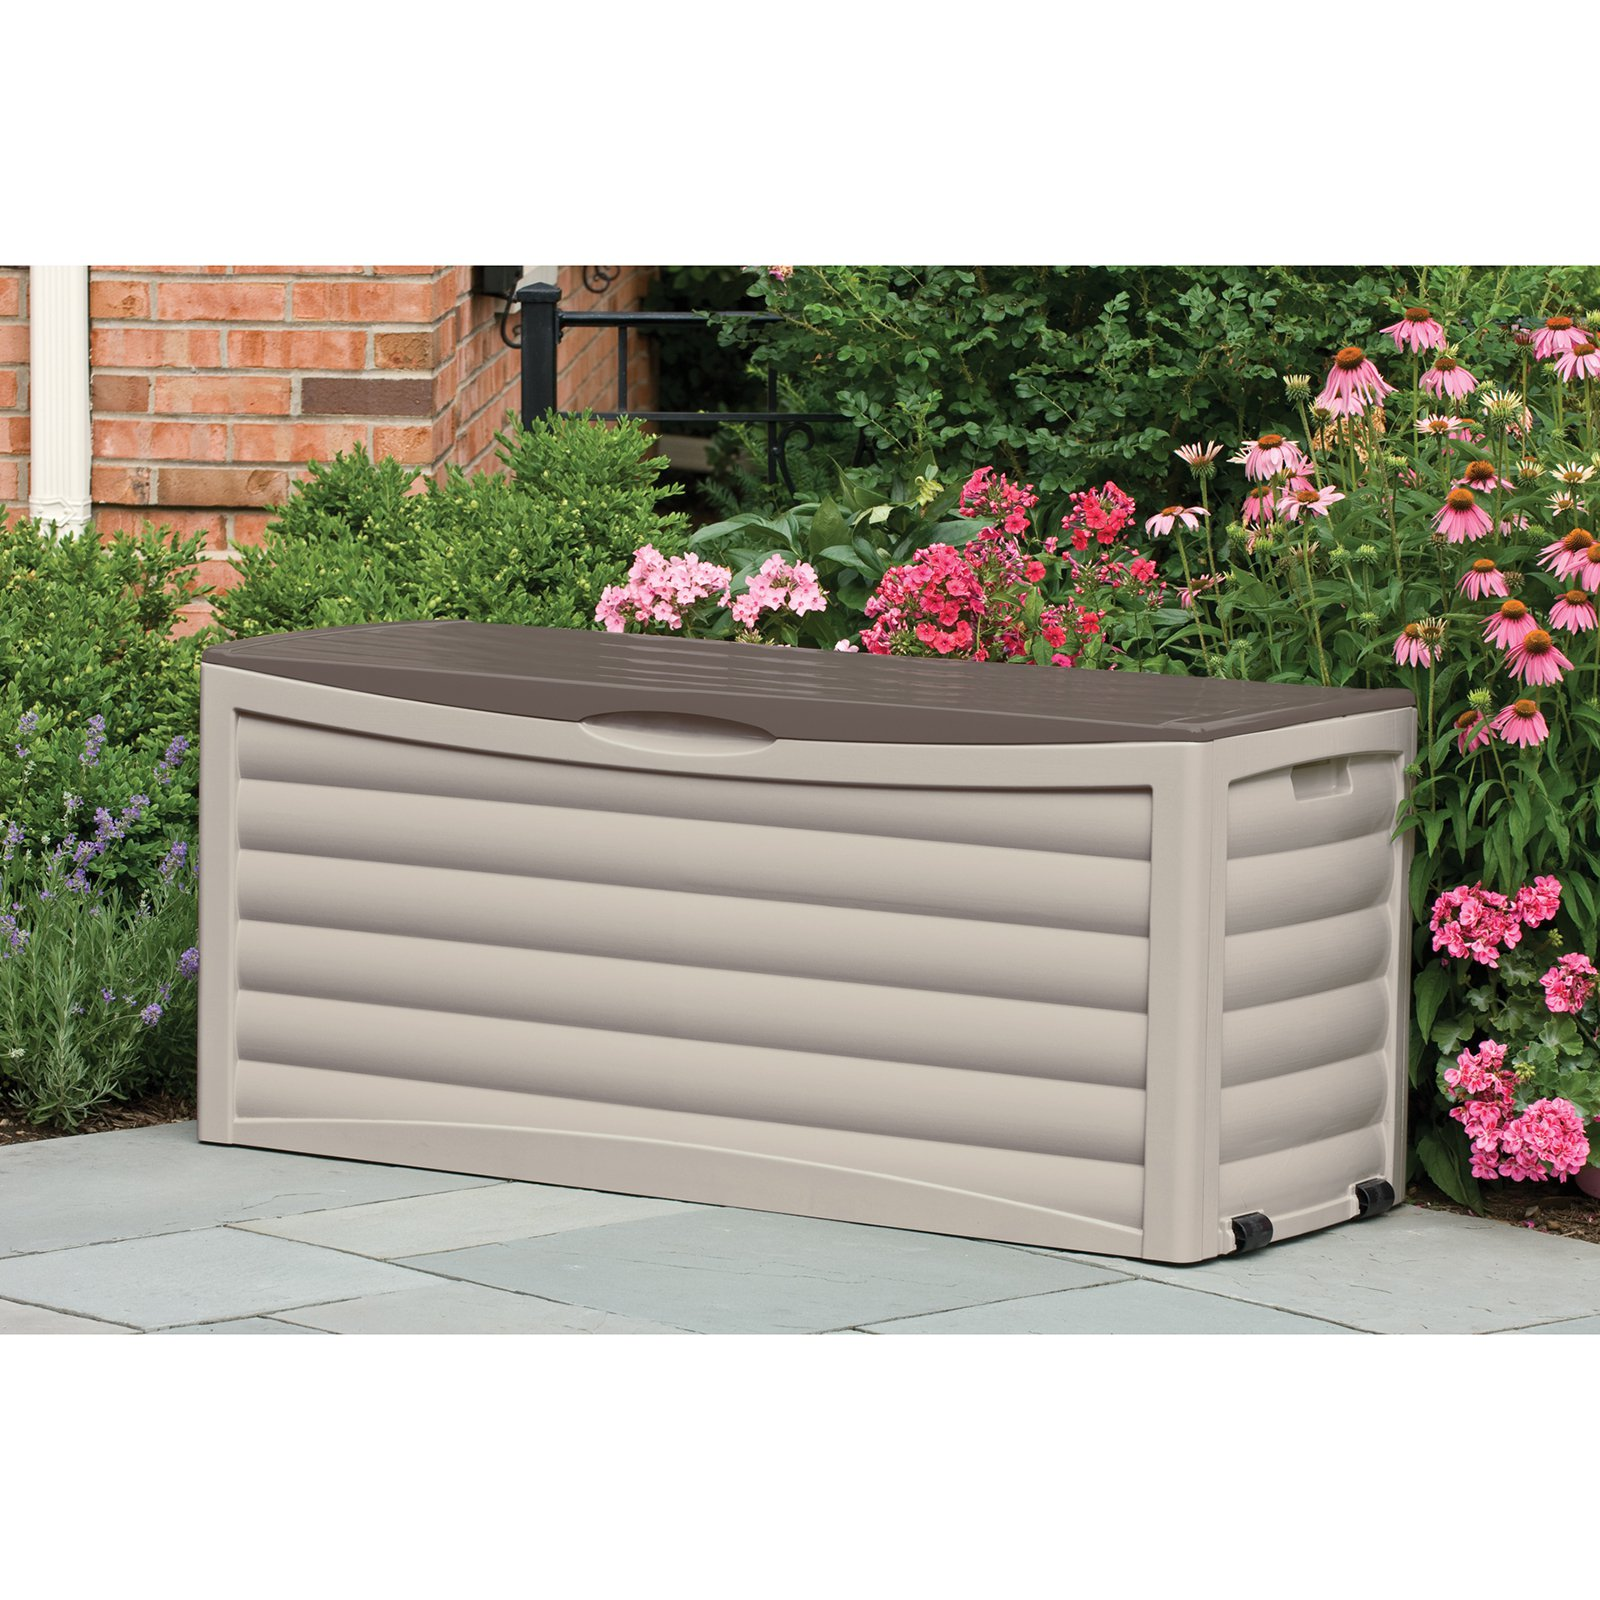 Plastic Deck Boxes | Keter 150 Gallon Deck Box | Keter Jumbo Deck Box